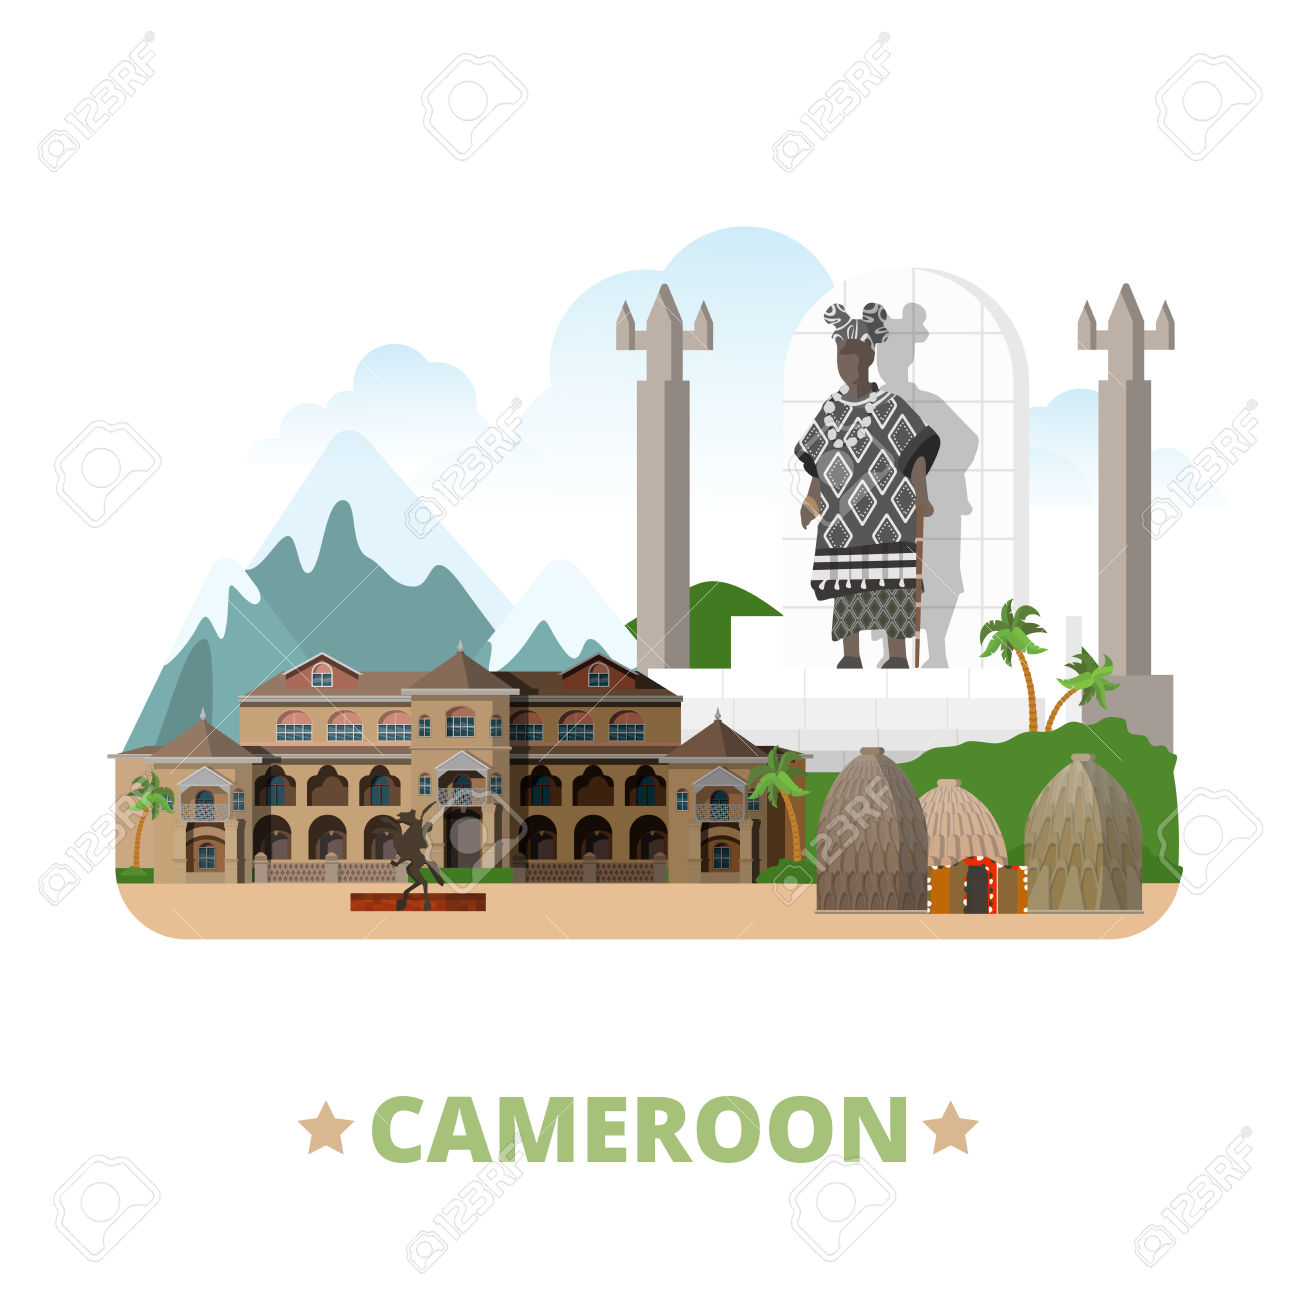 Cameroon Country Design Template. Flat Cartoon Style Historic.